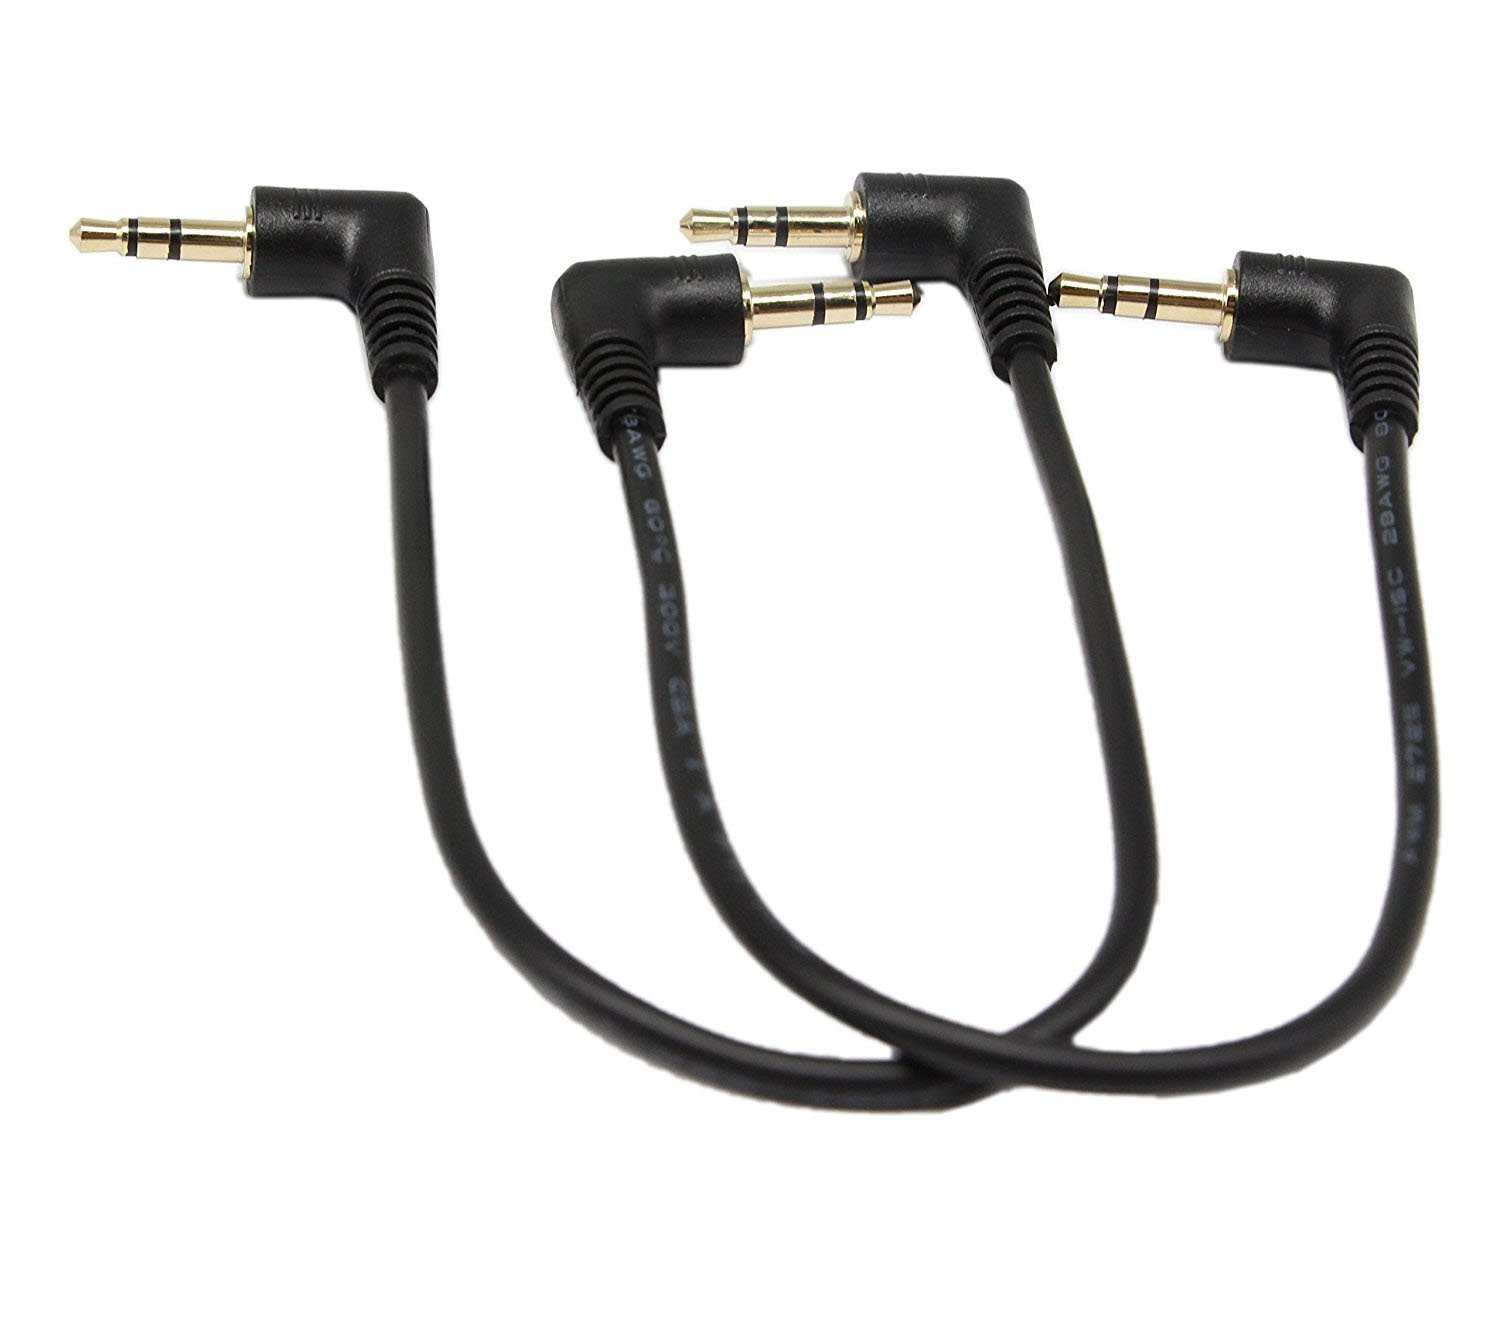 3.5mm Stereo Audio Cable,SinLoon (2-Pack) Gold Plated 90 Degree Right & Left Angled 3.5mm Male to Male Stereo Audio Cable for iPhone, iPad or Smartphones, Tablets, Media Players(3-P,9inch)